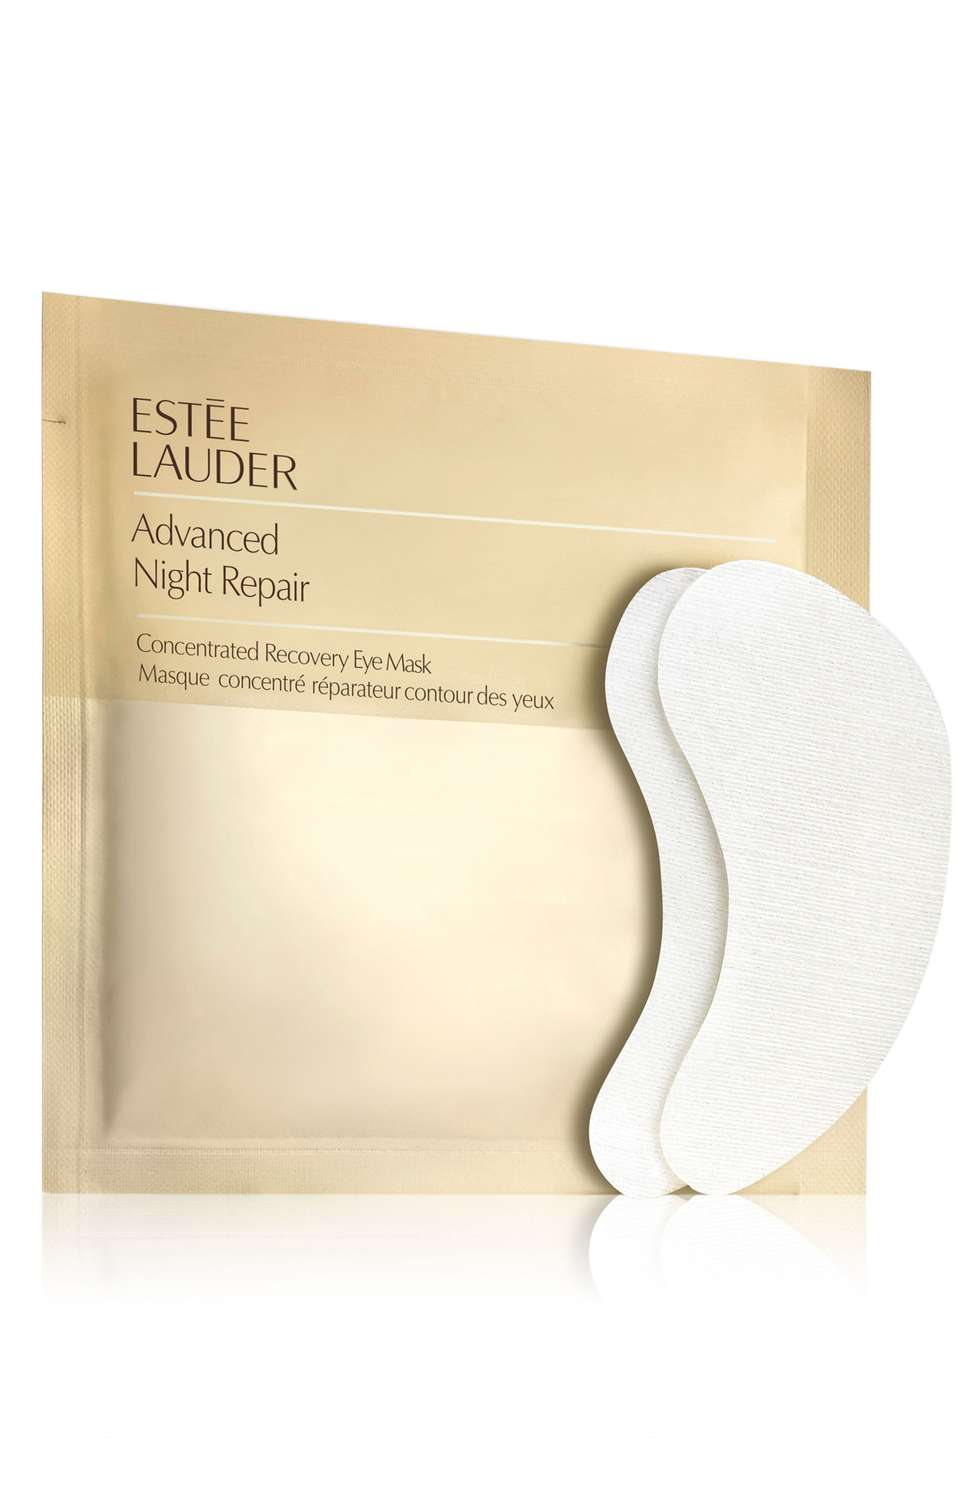 Estee Lauder Recovery Eye Mask